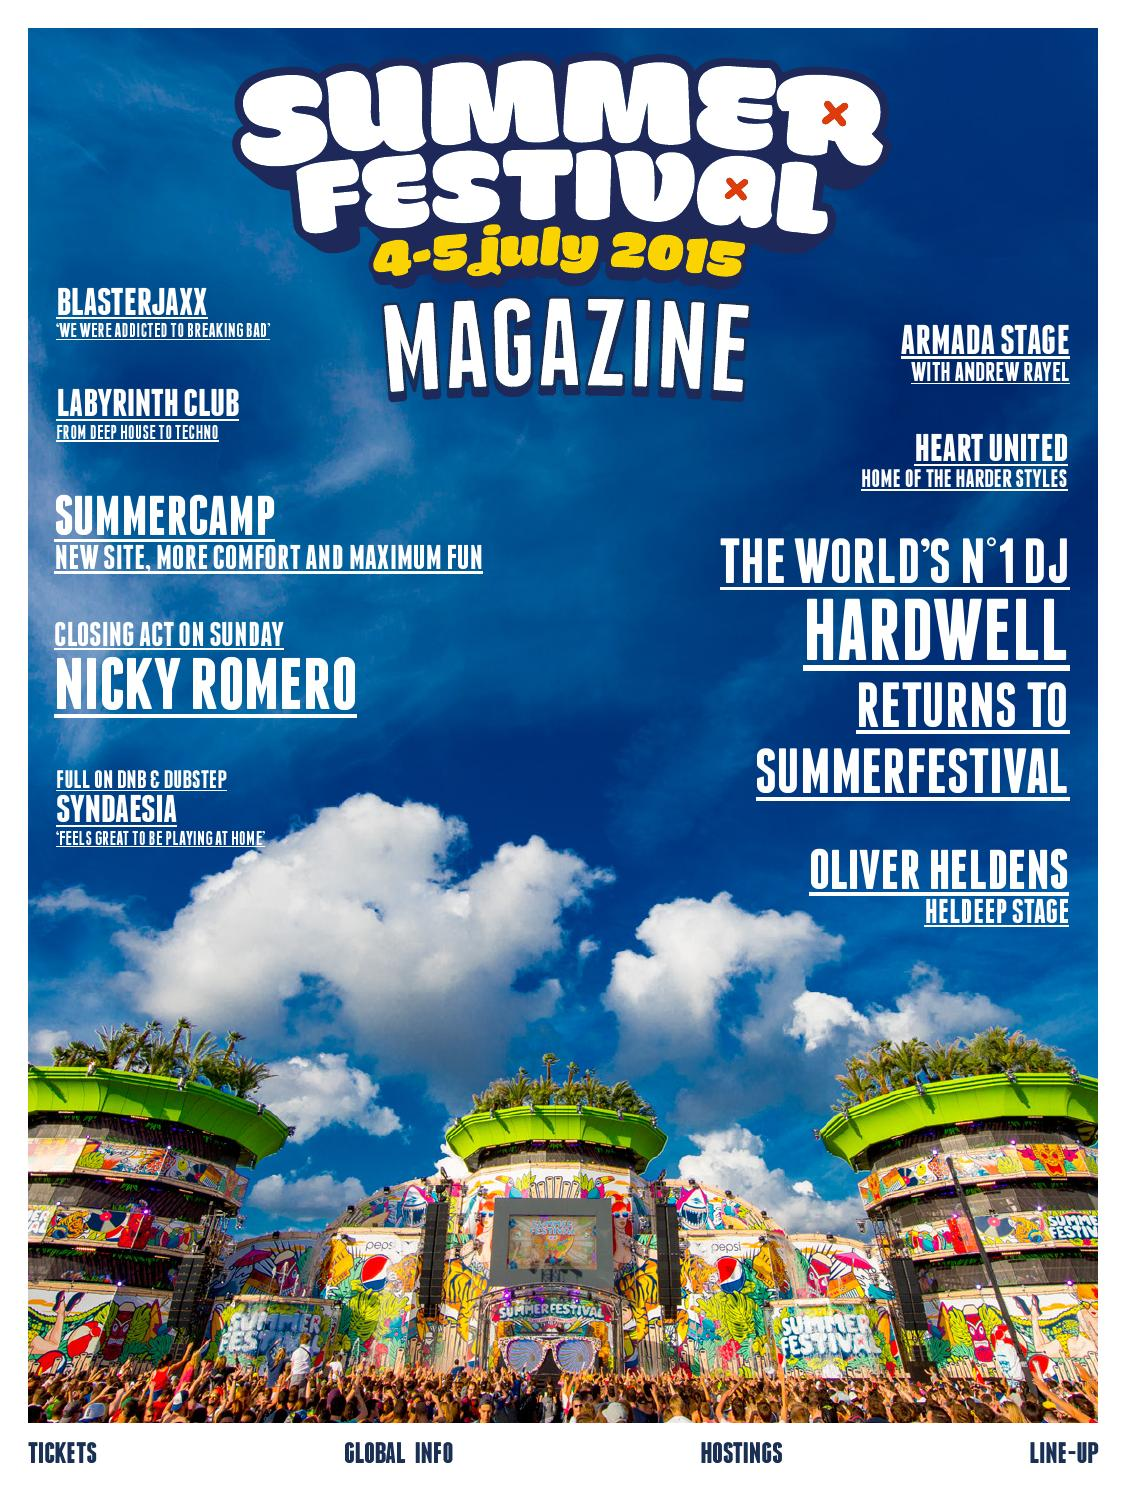 Summer Festival Antwerp 2015 Magazine by Kevin Budts - issuu